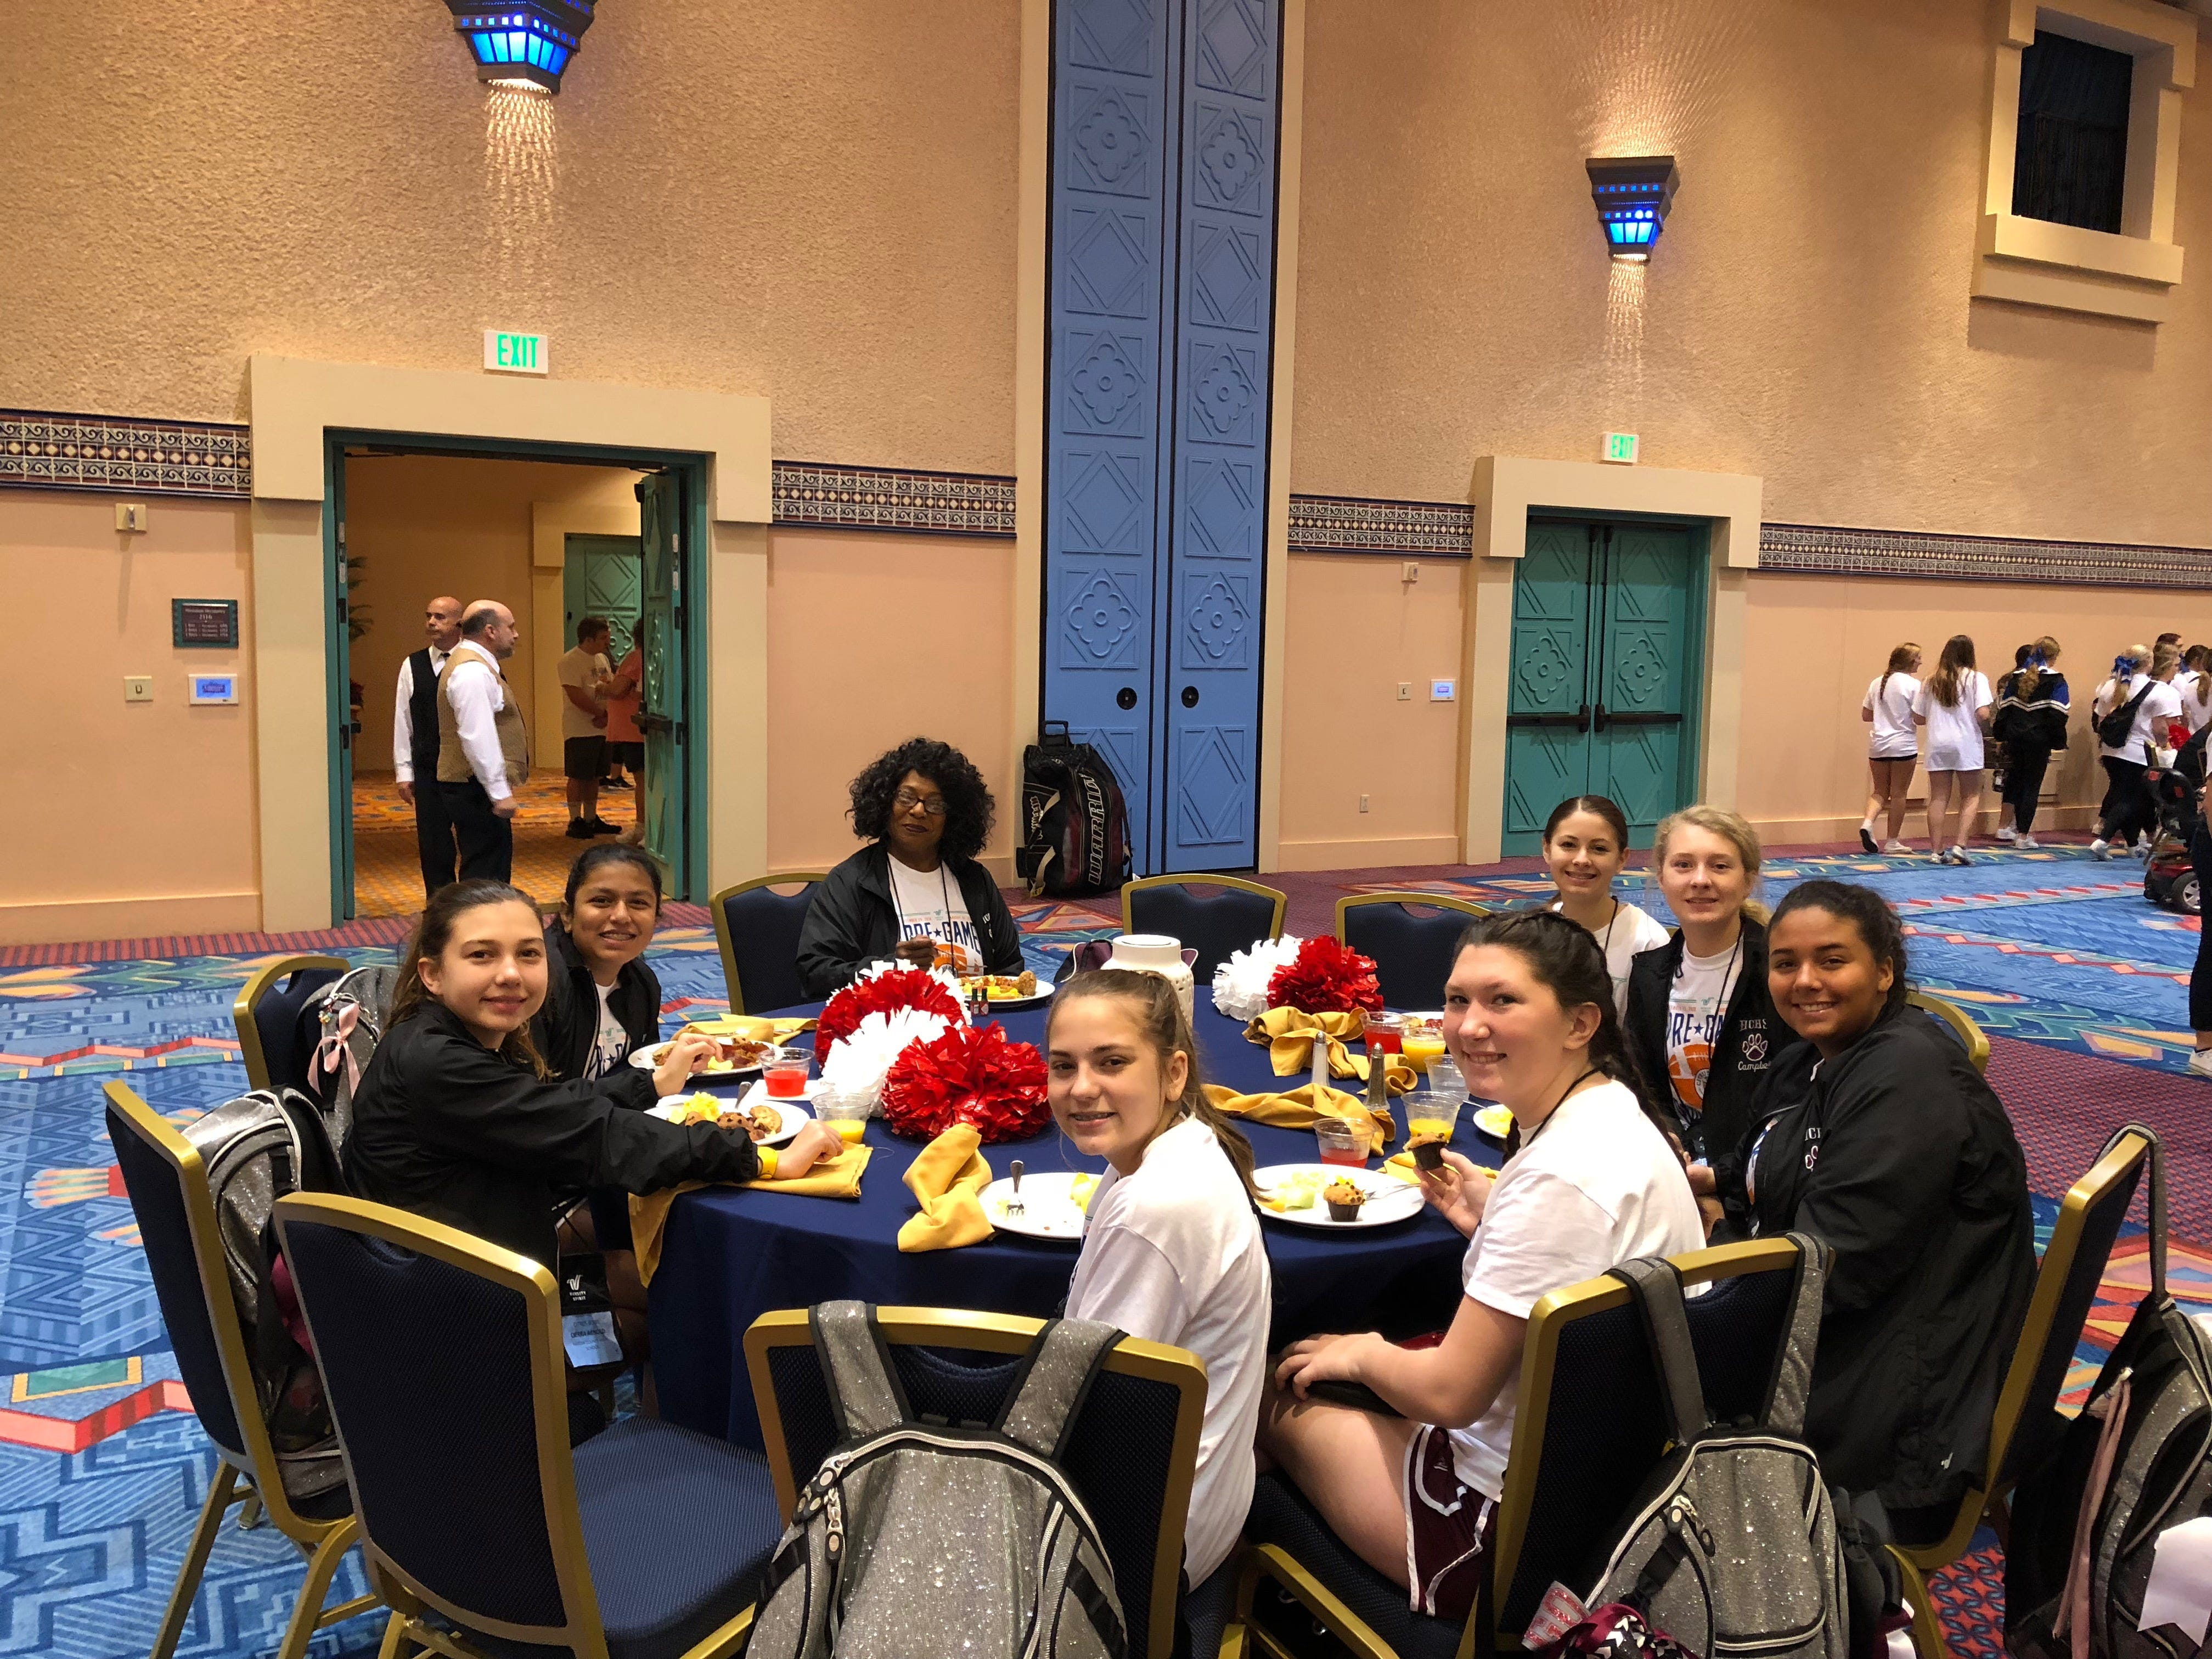 Coach Debra Hopson-Russell meets with some of the cheer team for breakfast before one of many practices for the Citrus Bowl pre-game show. Pictured, from left to right, are Jonvi Patel, Ciera Clark, Addison Hutcherson, captain Gracie Young, Sadi Turner, Campbell Register and Hannah Beth Riley.